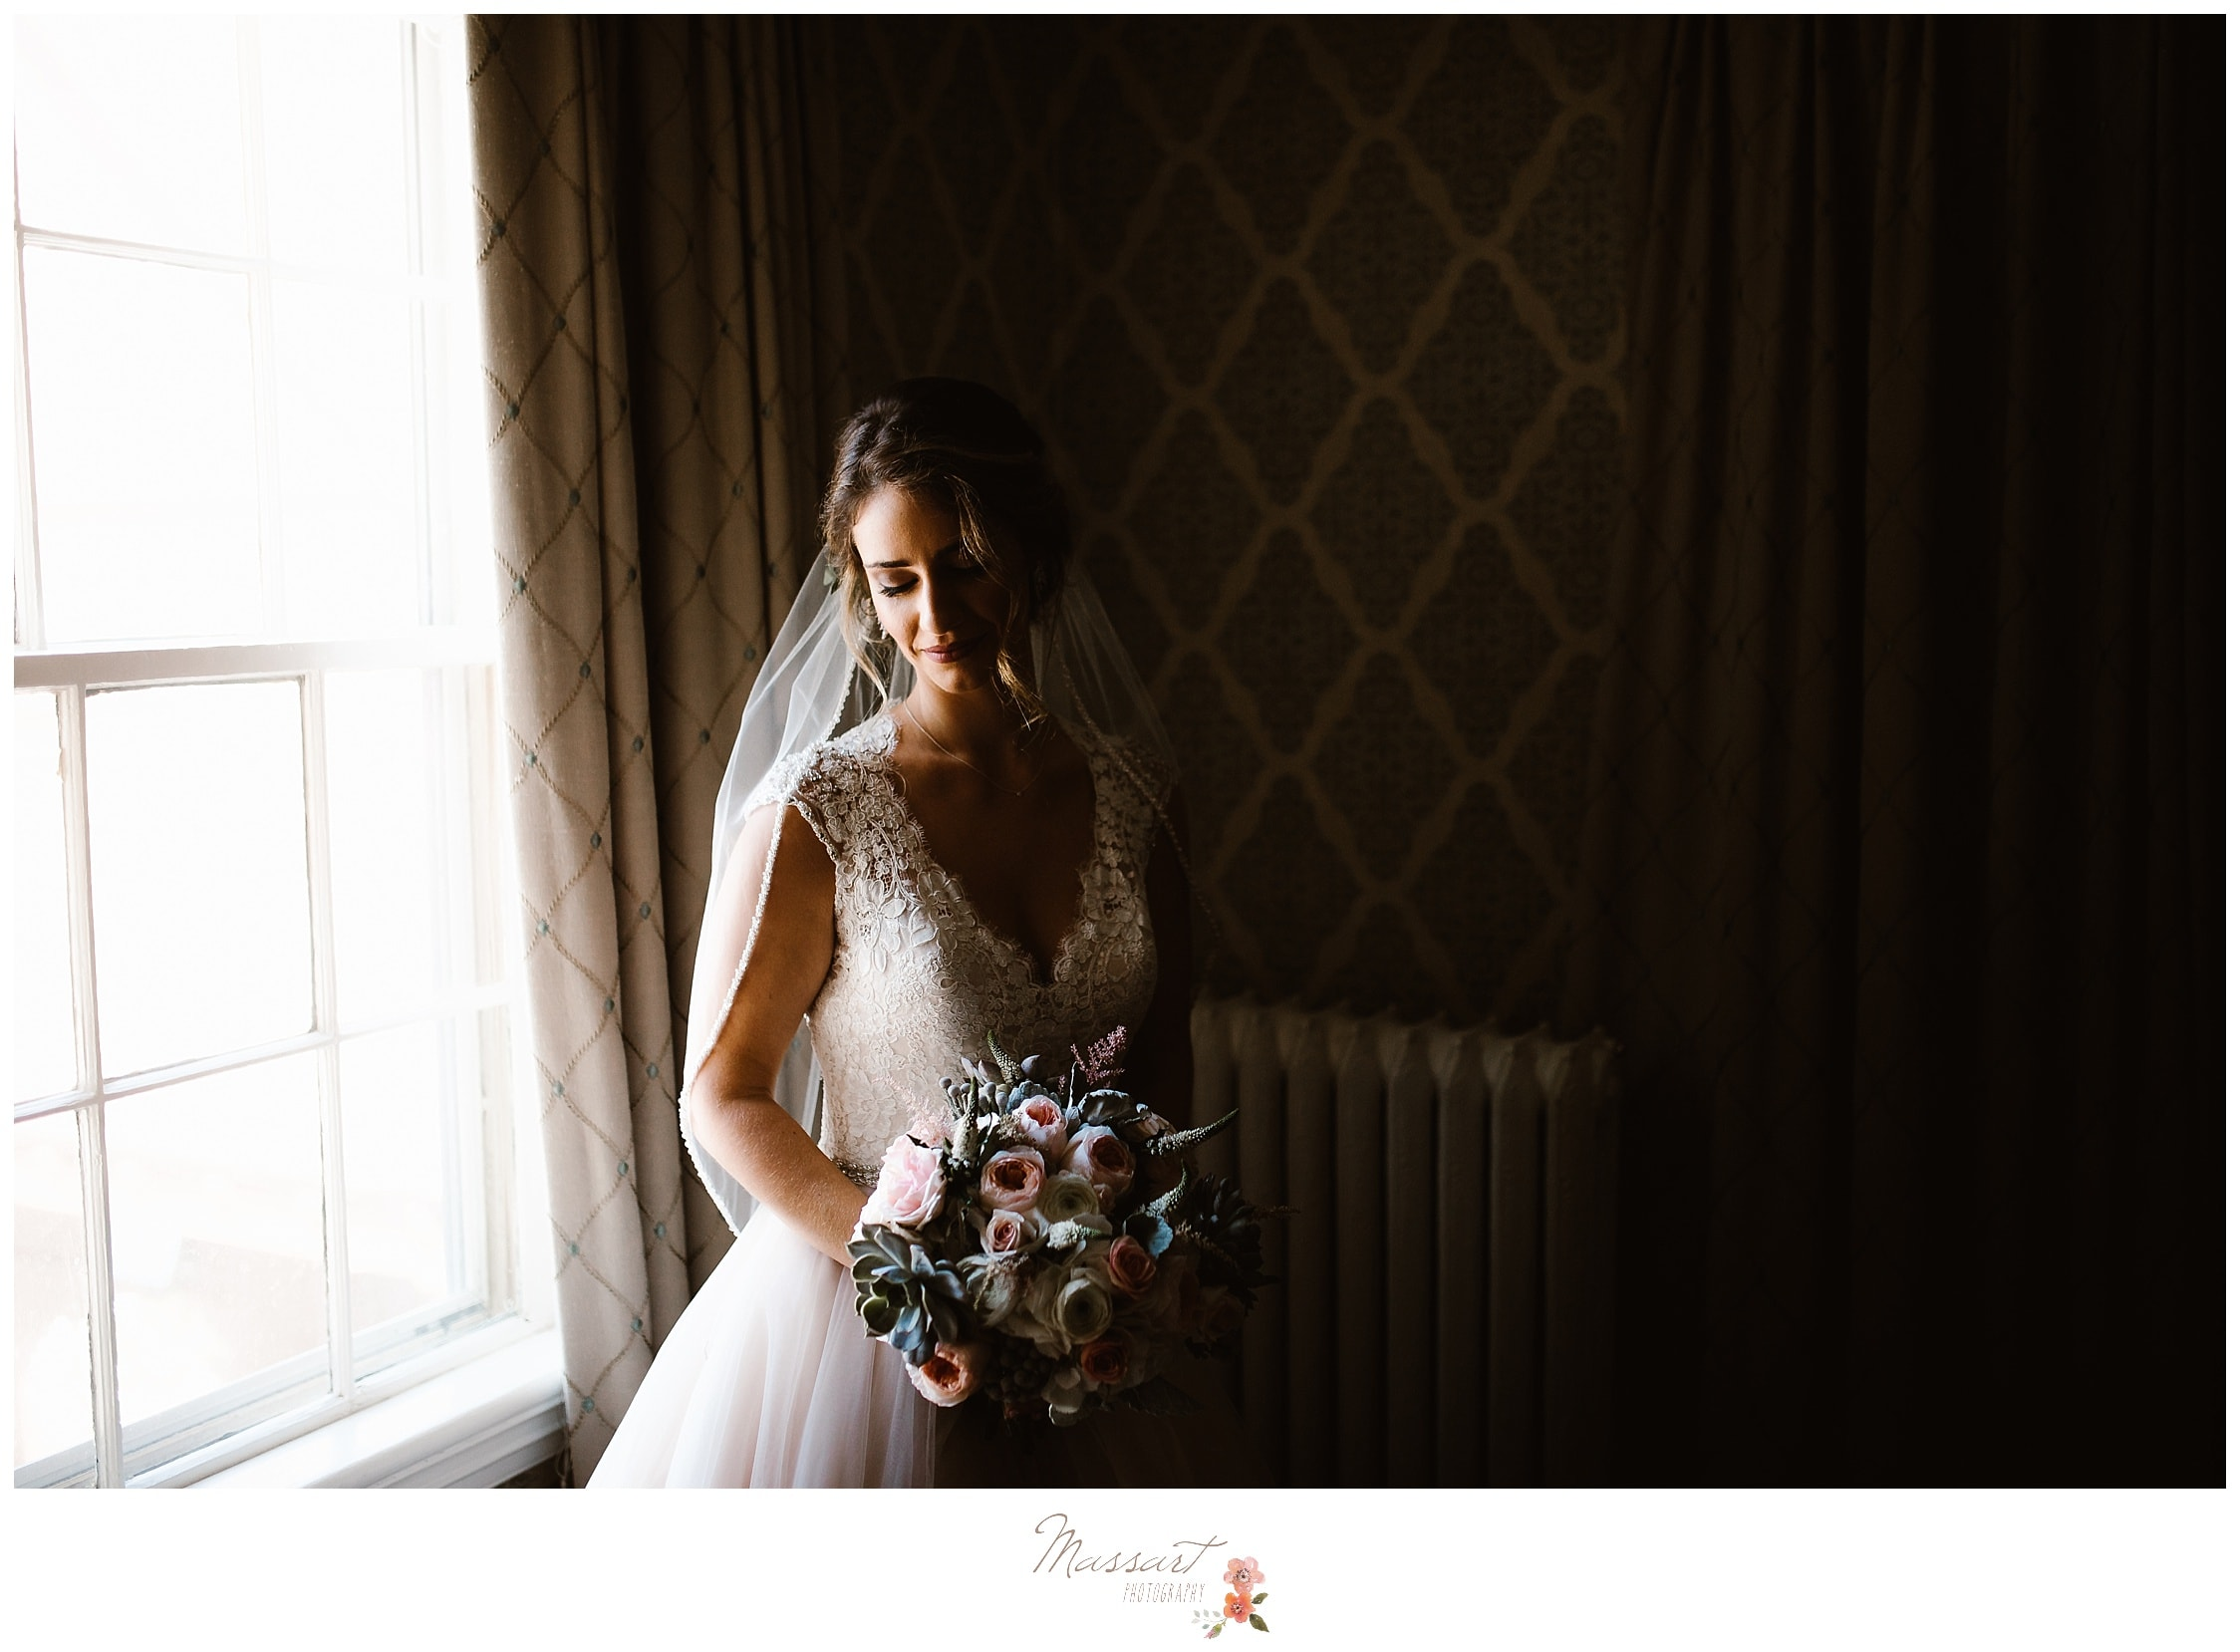 Dramatic portrait of the bride by massart photographers in Rhode Island